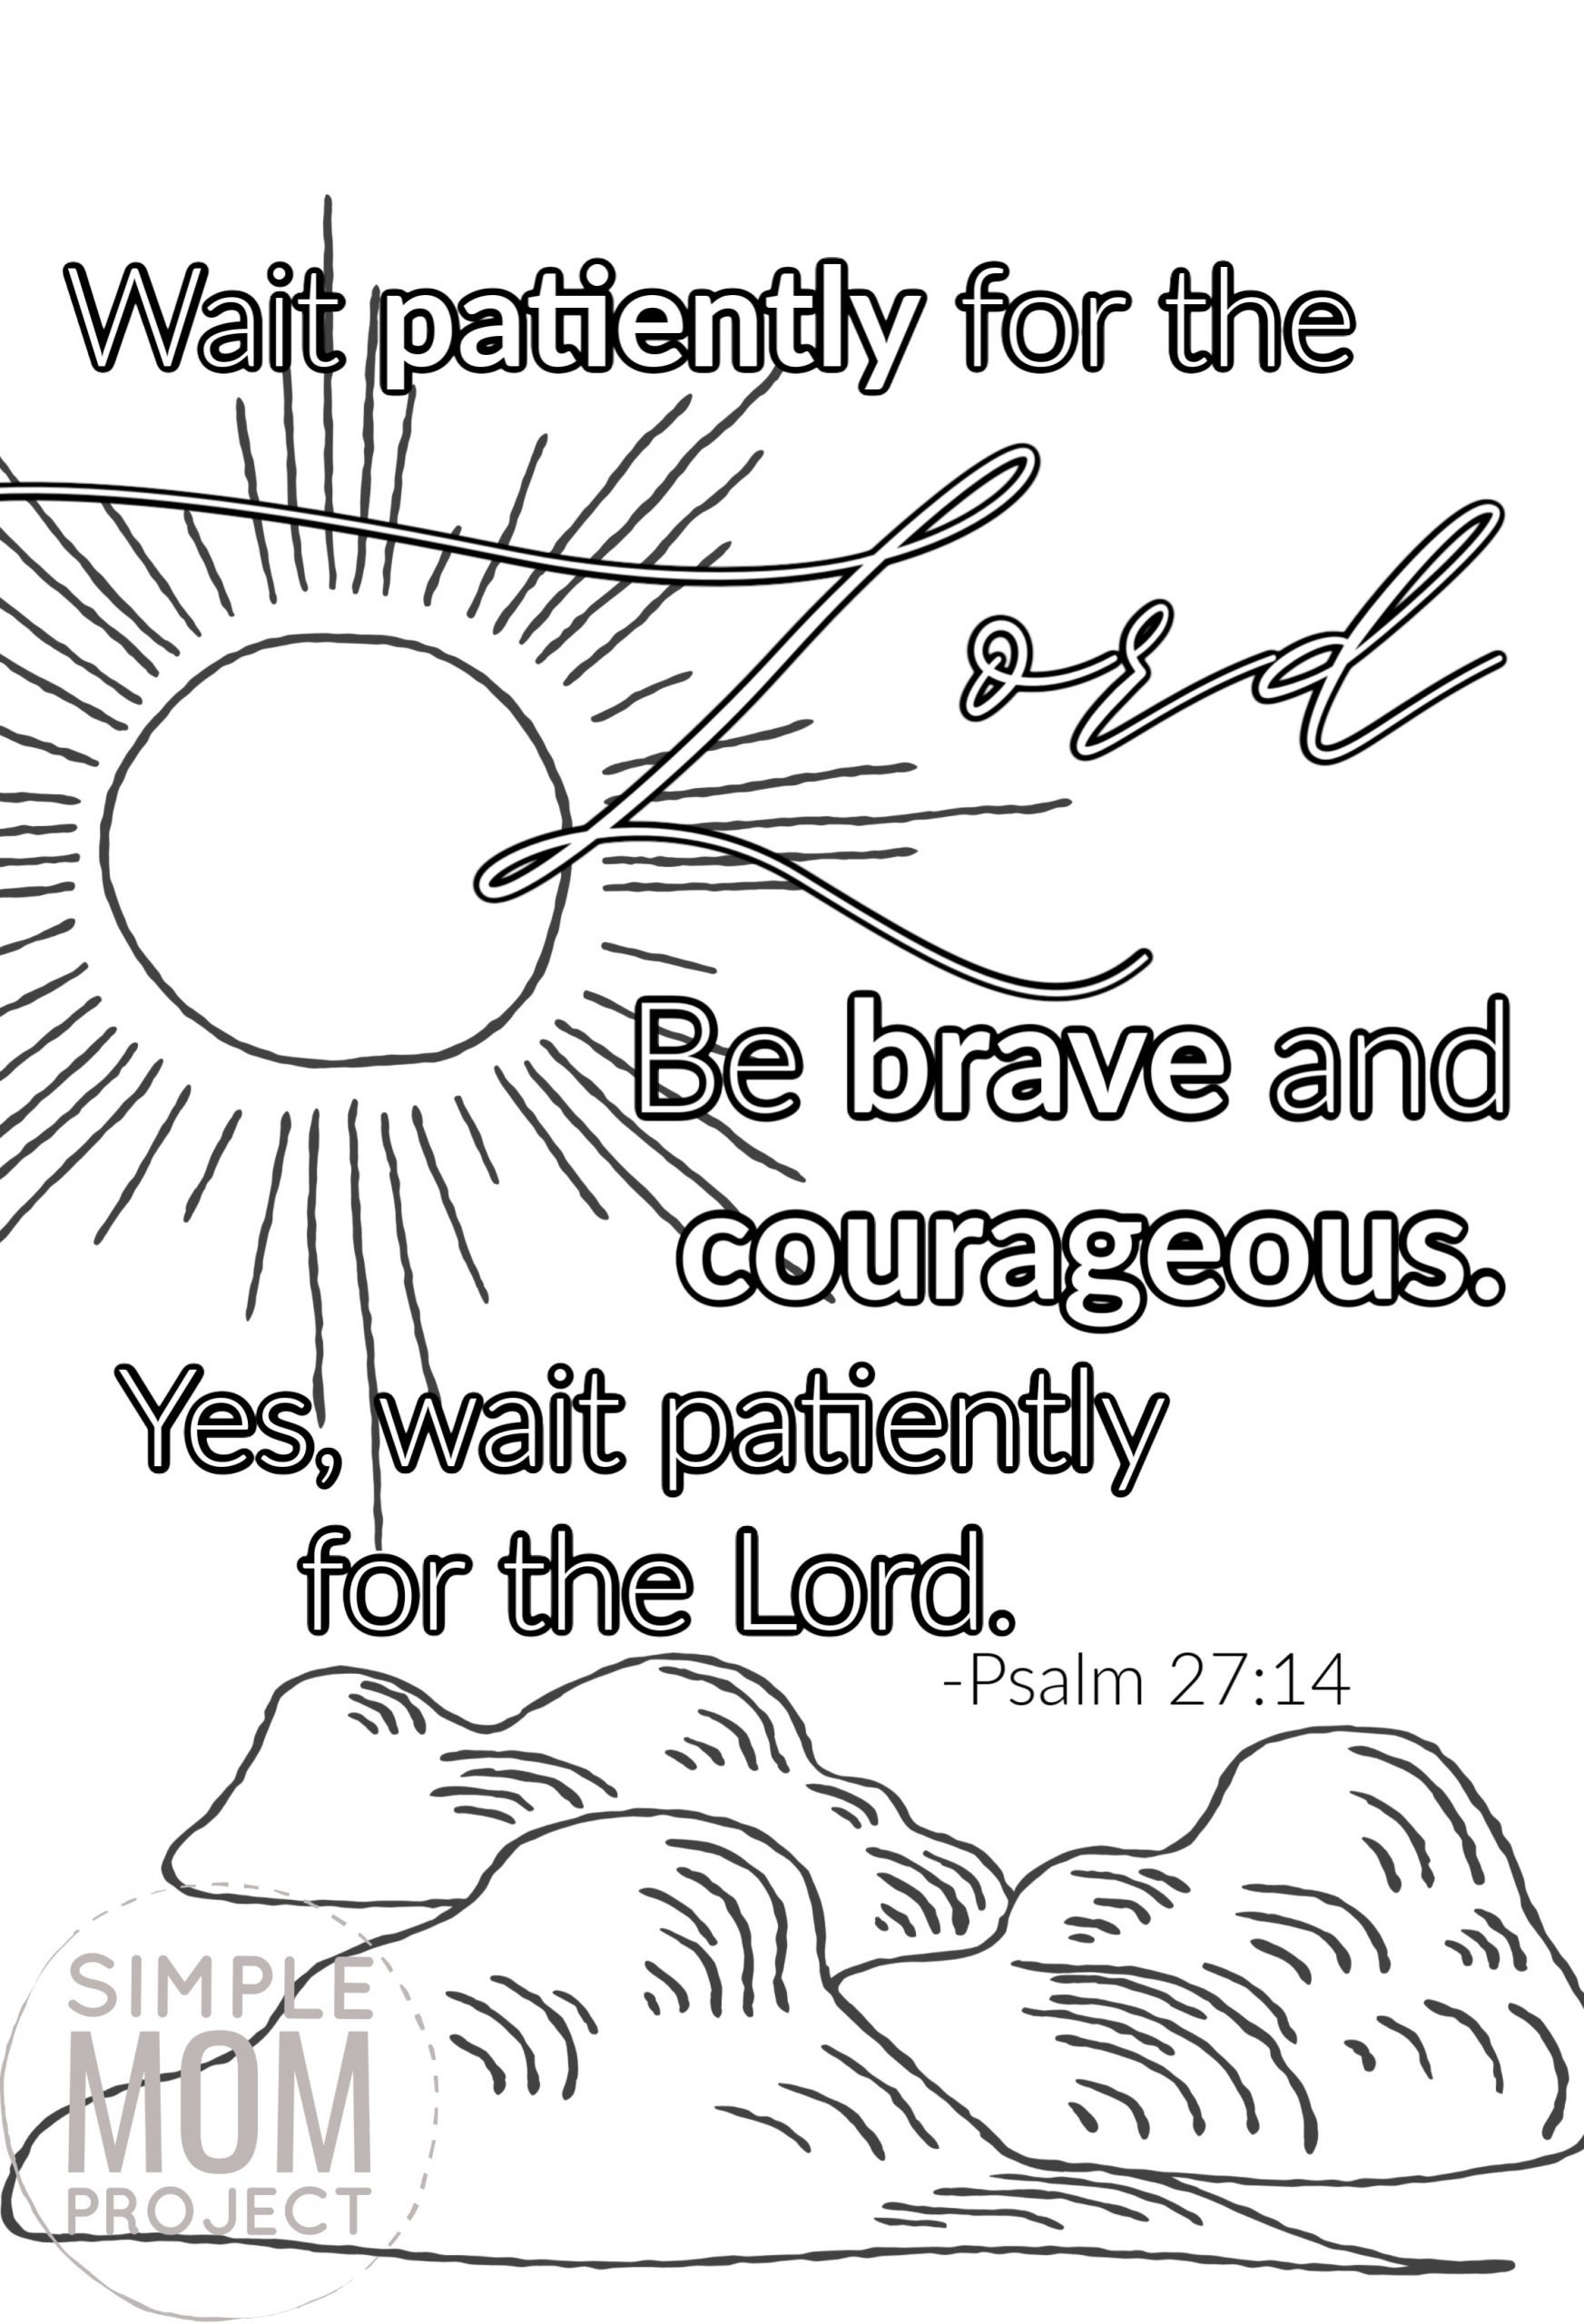 Psalm 27 14 Wait patiently for the Lord Free Printable Bible Verse Coloring page for adults and kids